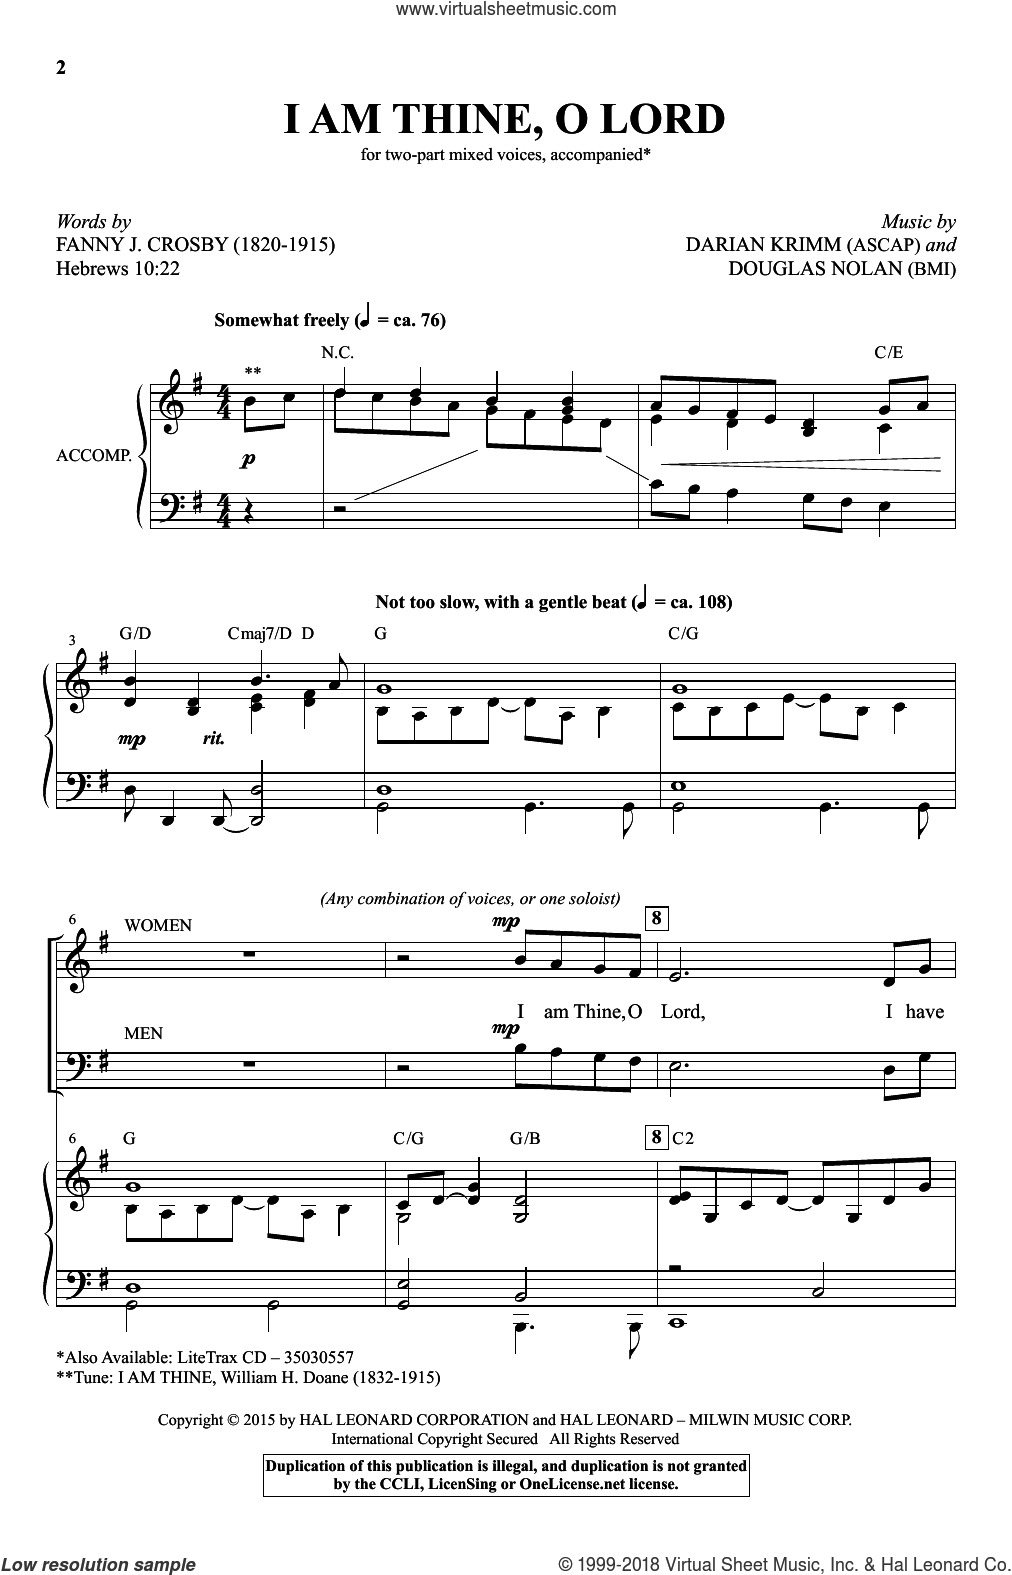 I Am Thine, O Lord sheet music for choir (duets) by Douglas Nolan, Darian Krimm and Fanny J. Crosby. Score Image Preview.